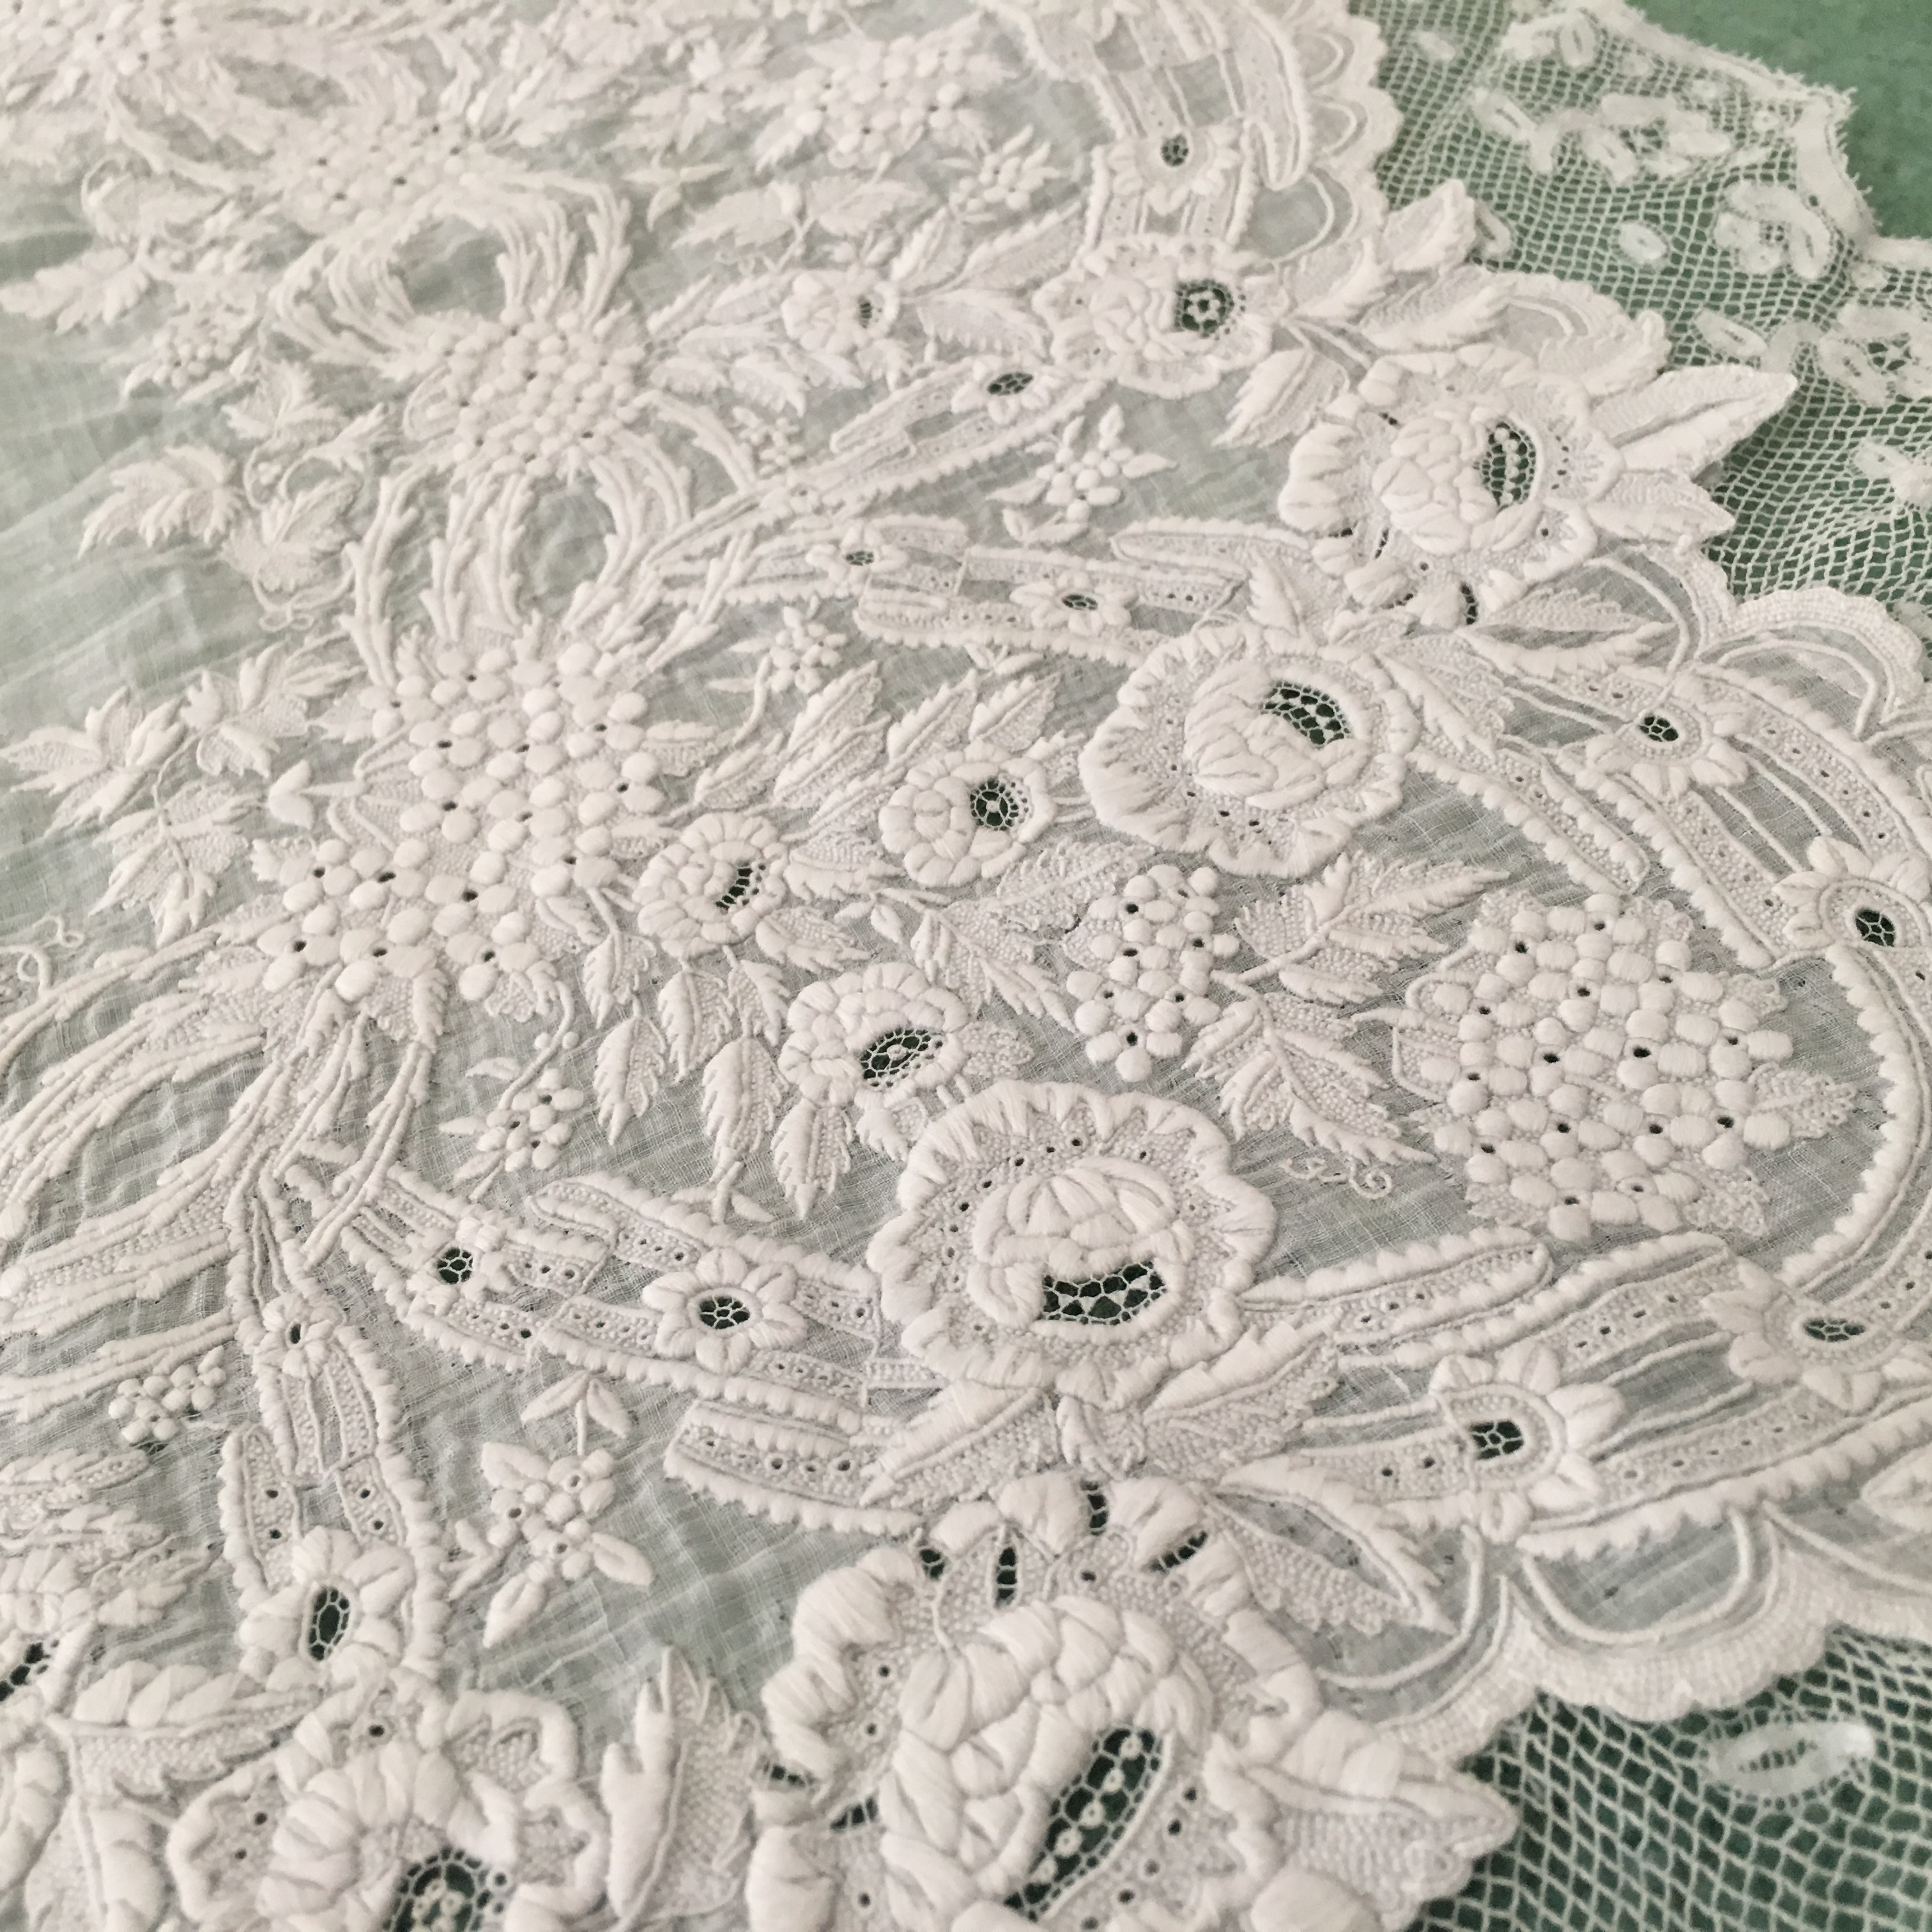 Close up of the embroidery